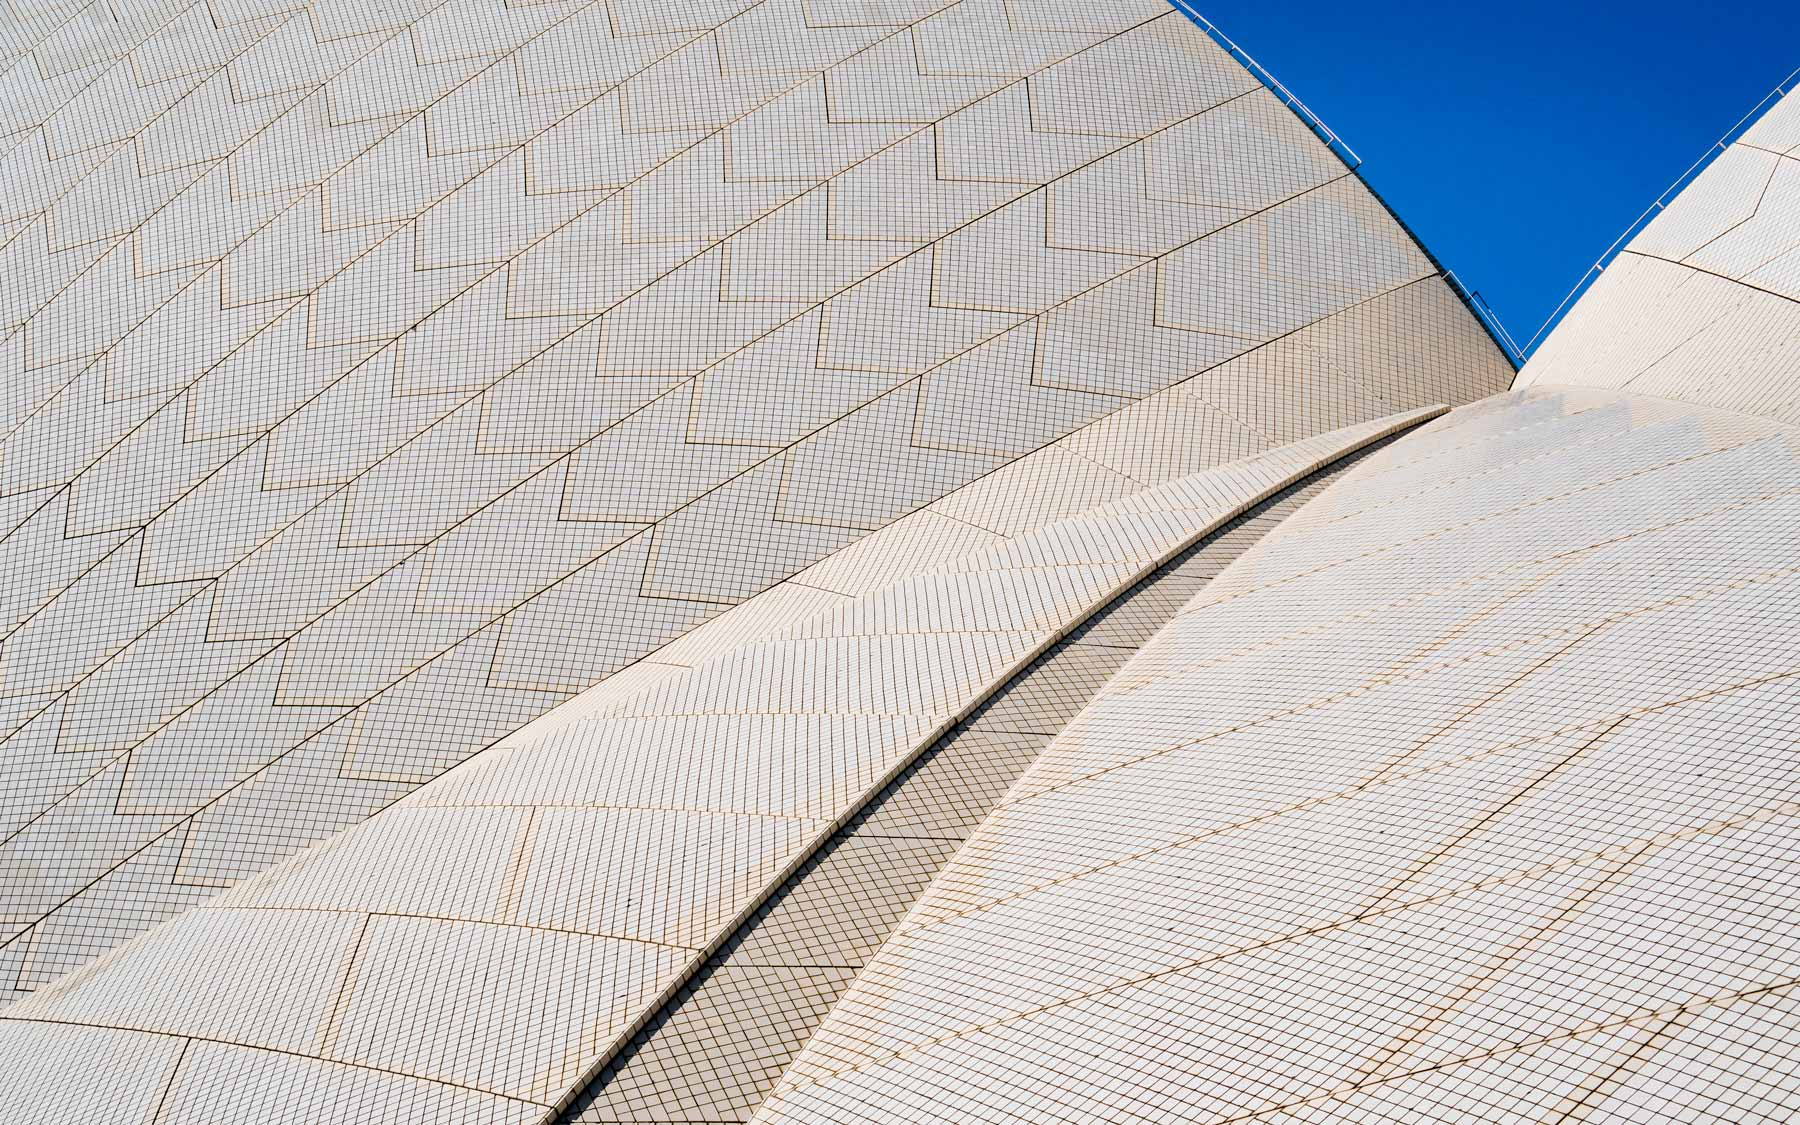 The shell roof of the Sydney Opera House.